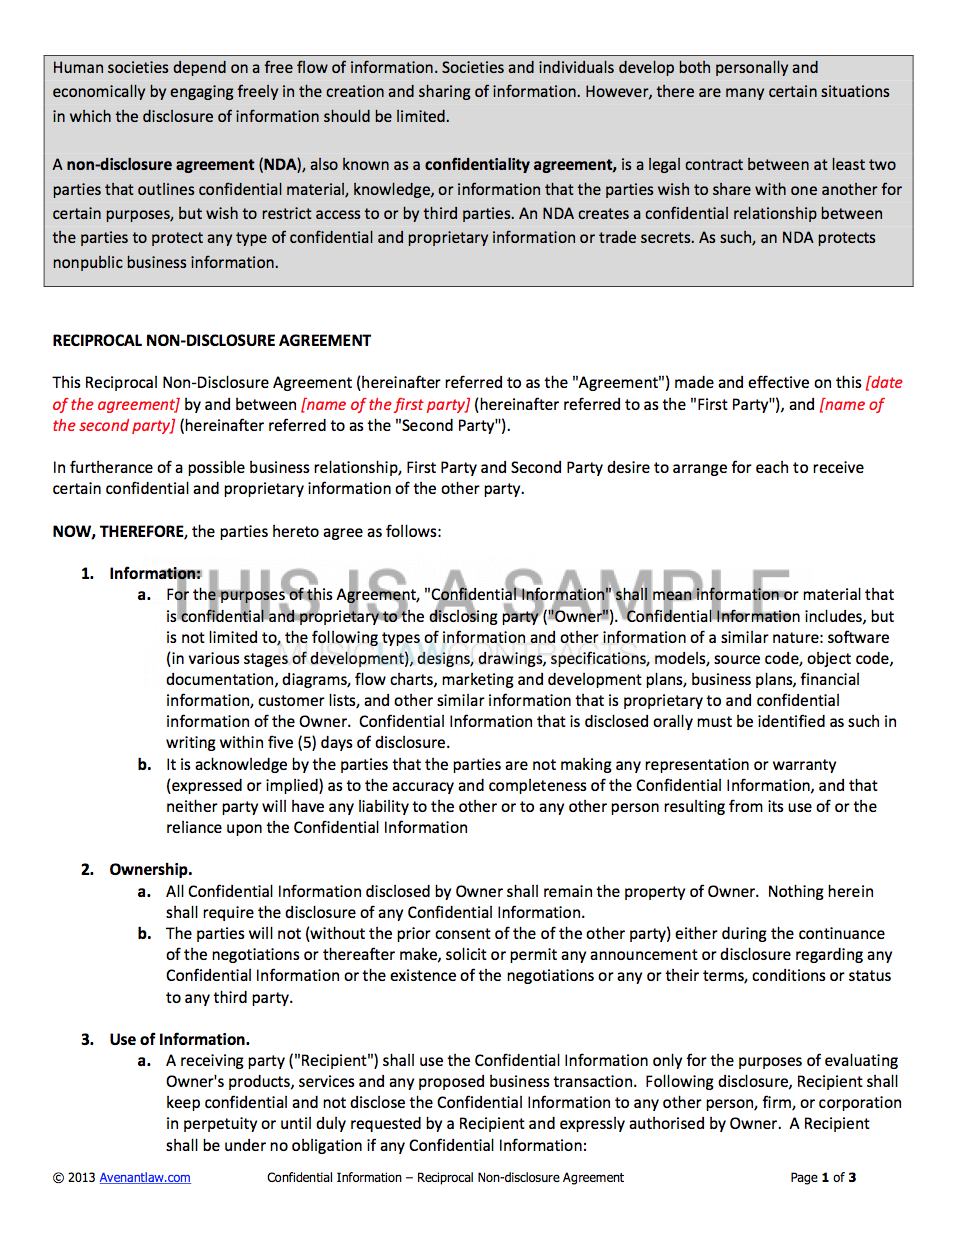 NonDisclosure Agreement NDA Template - Nda agreement template word